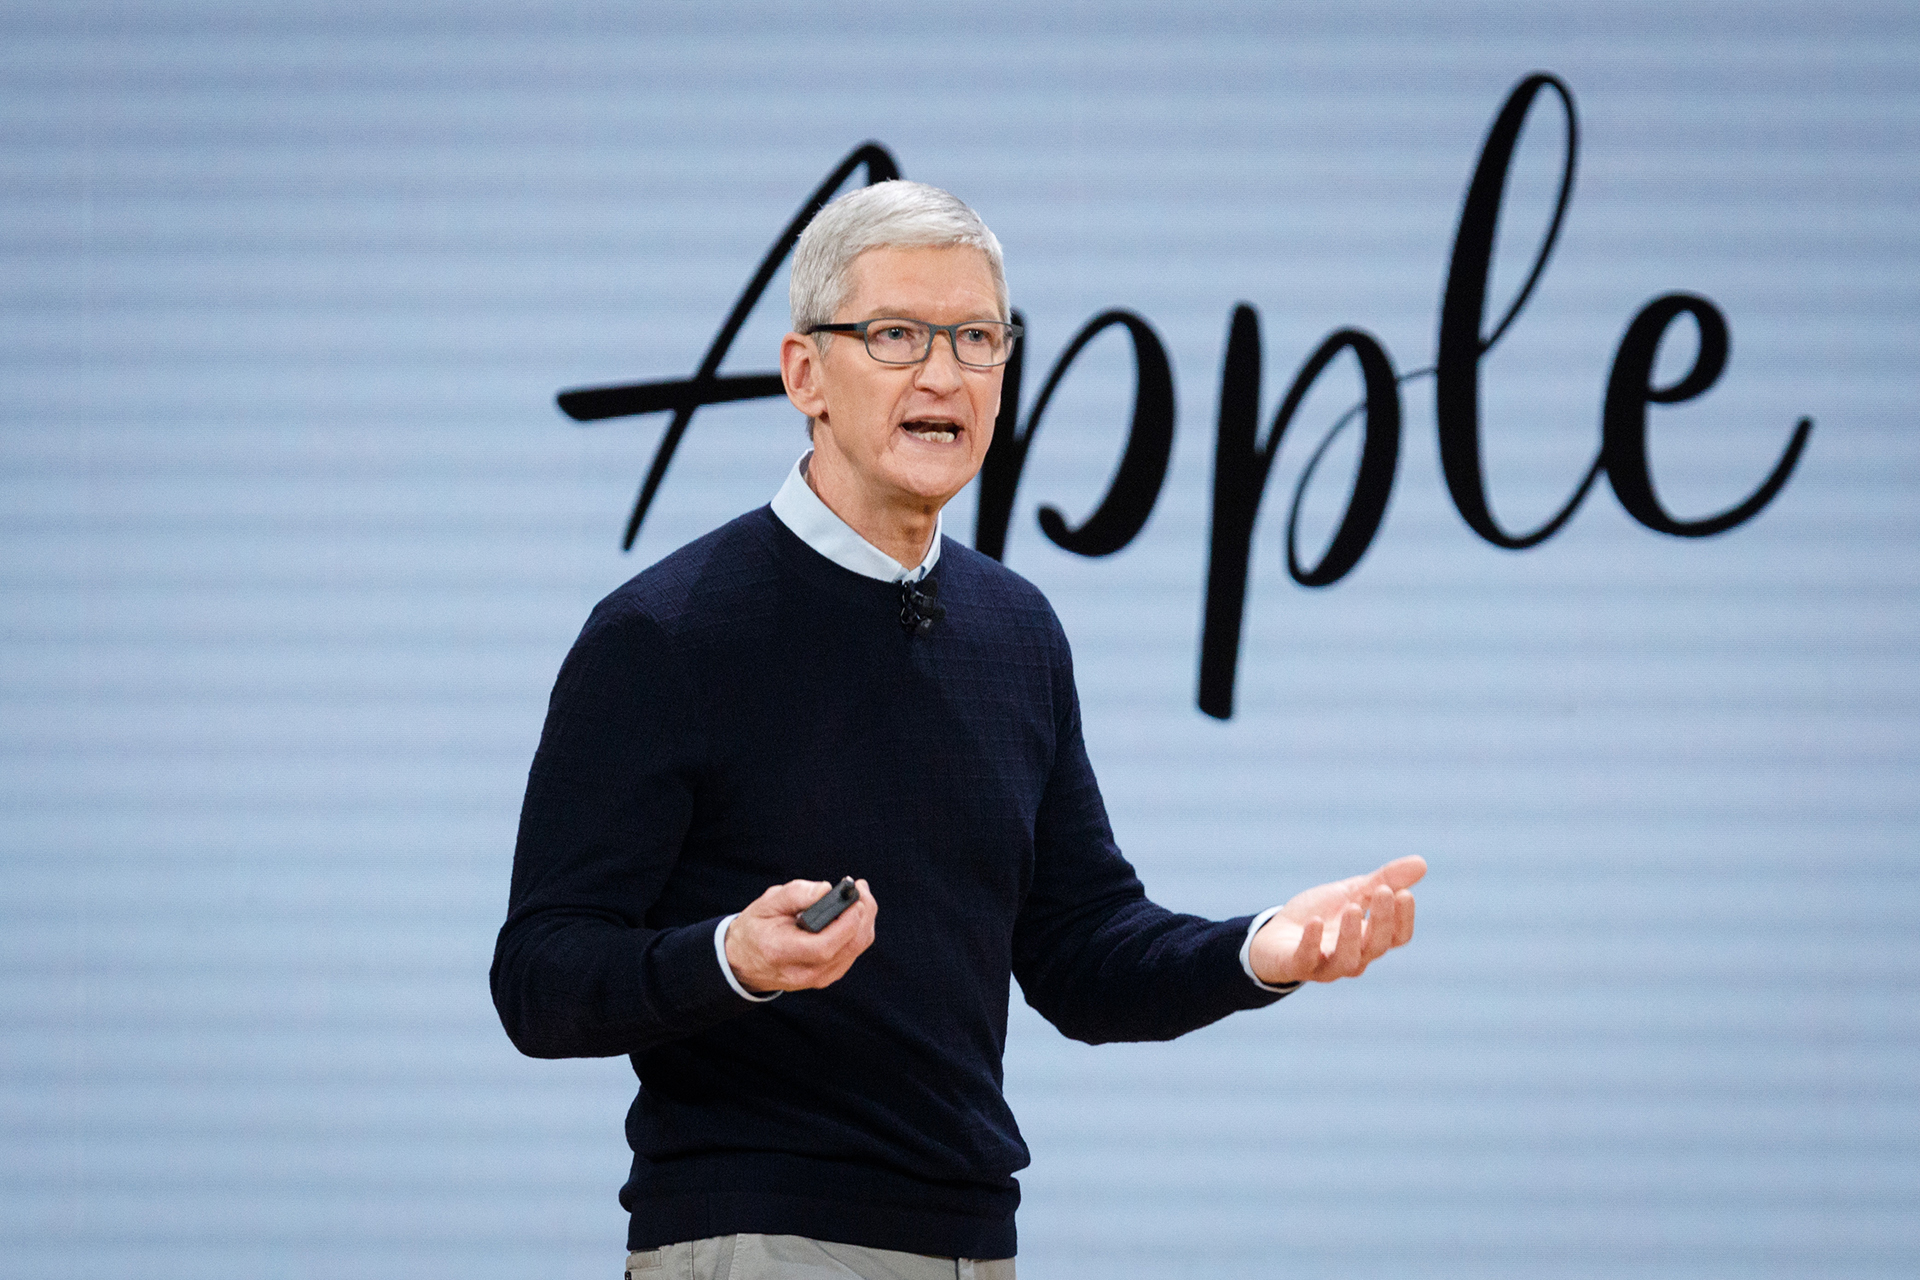 #AppleToo: Apple's reputation as a great employer is taking a beating